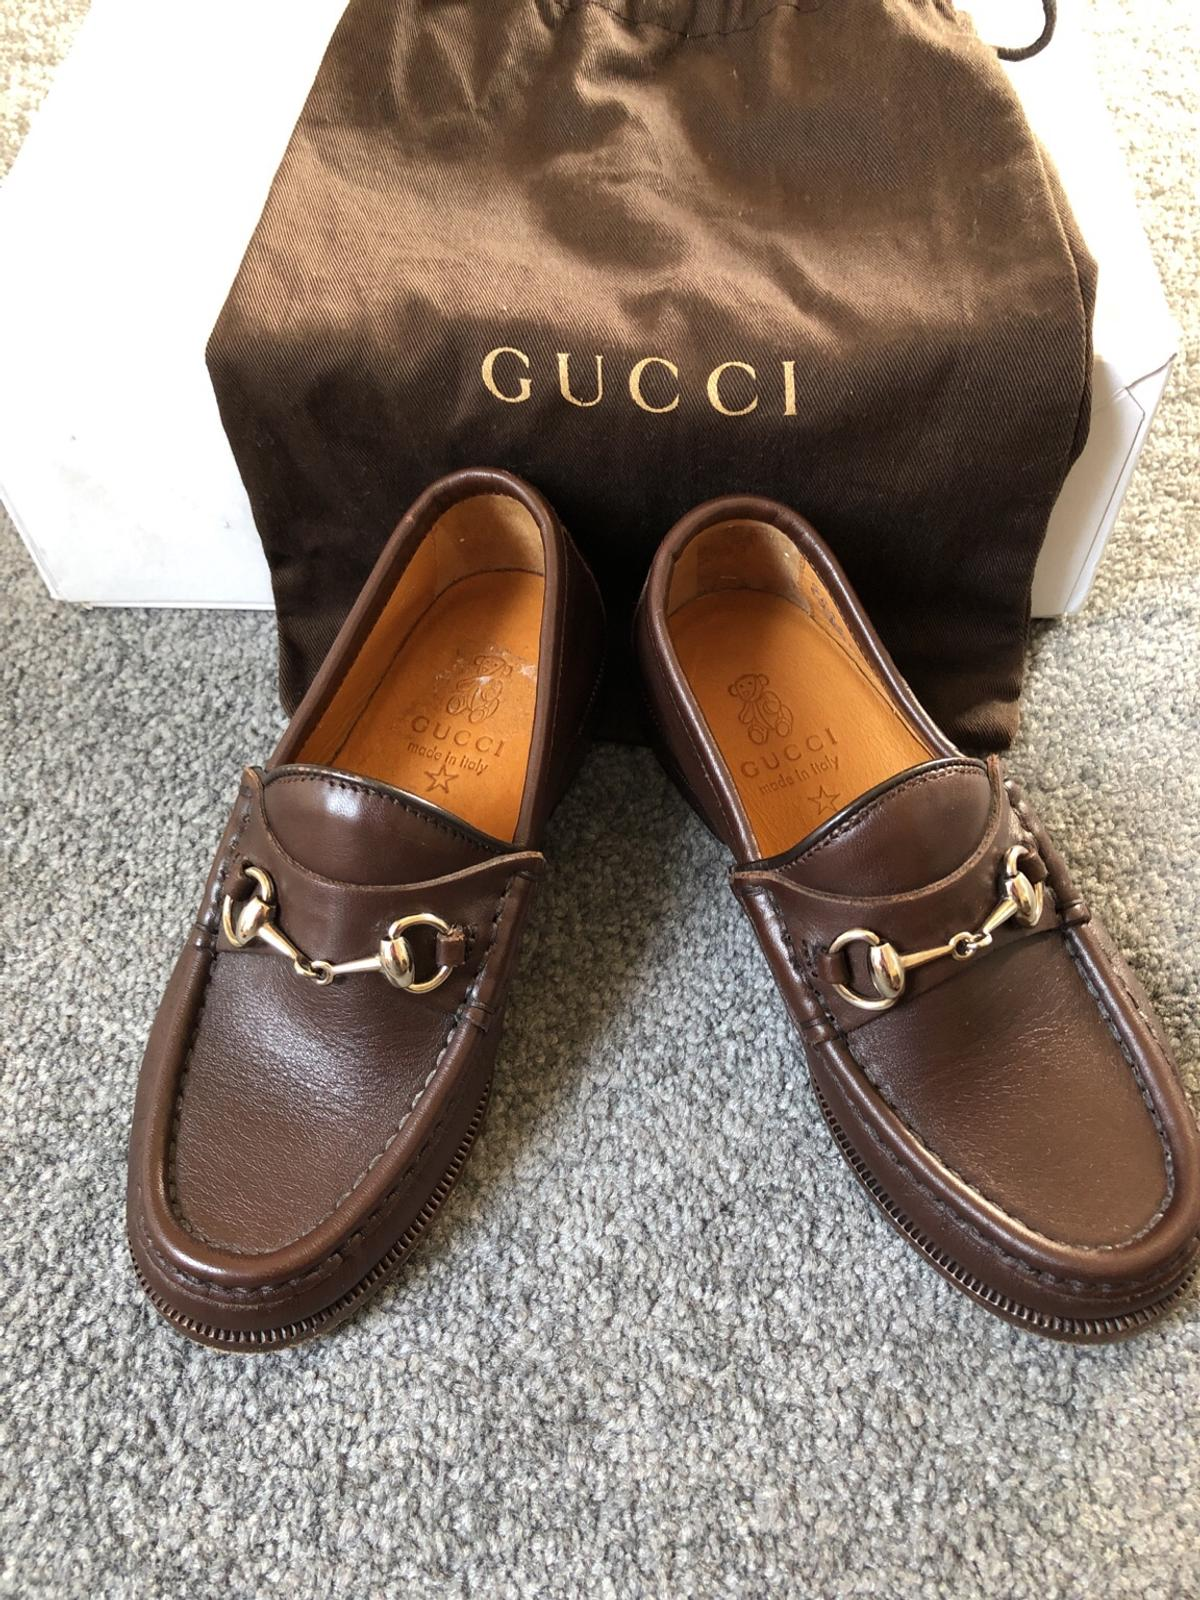 c25936ae5213 Kids Gucci loafers in Chelmsford for £100.00 for sale - Shpock